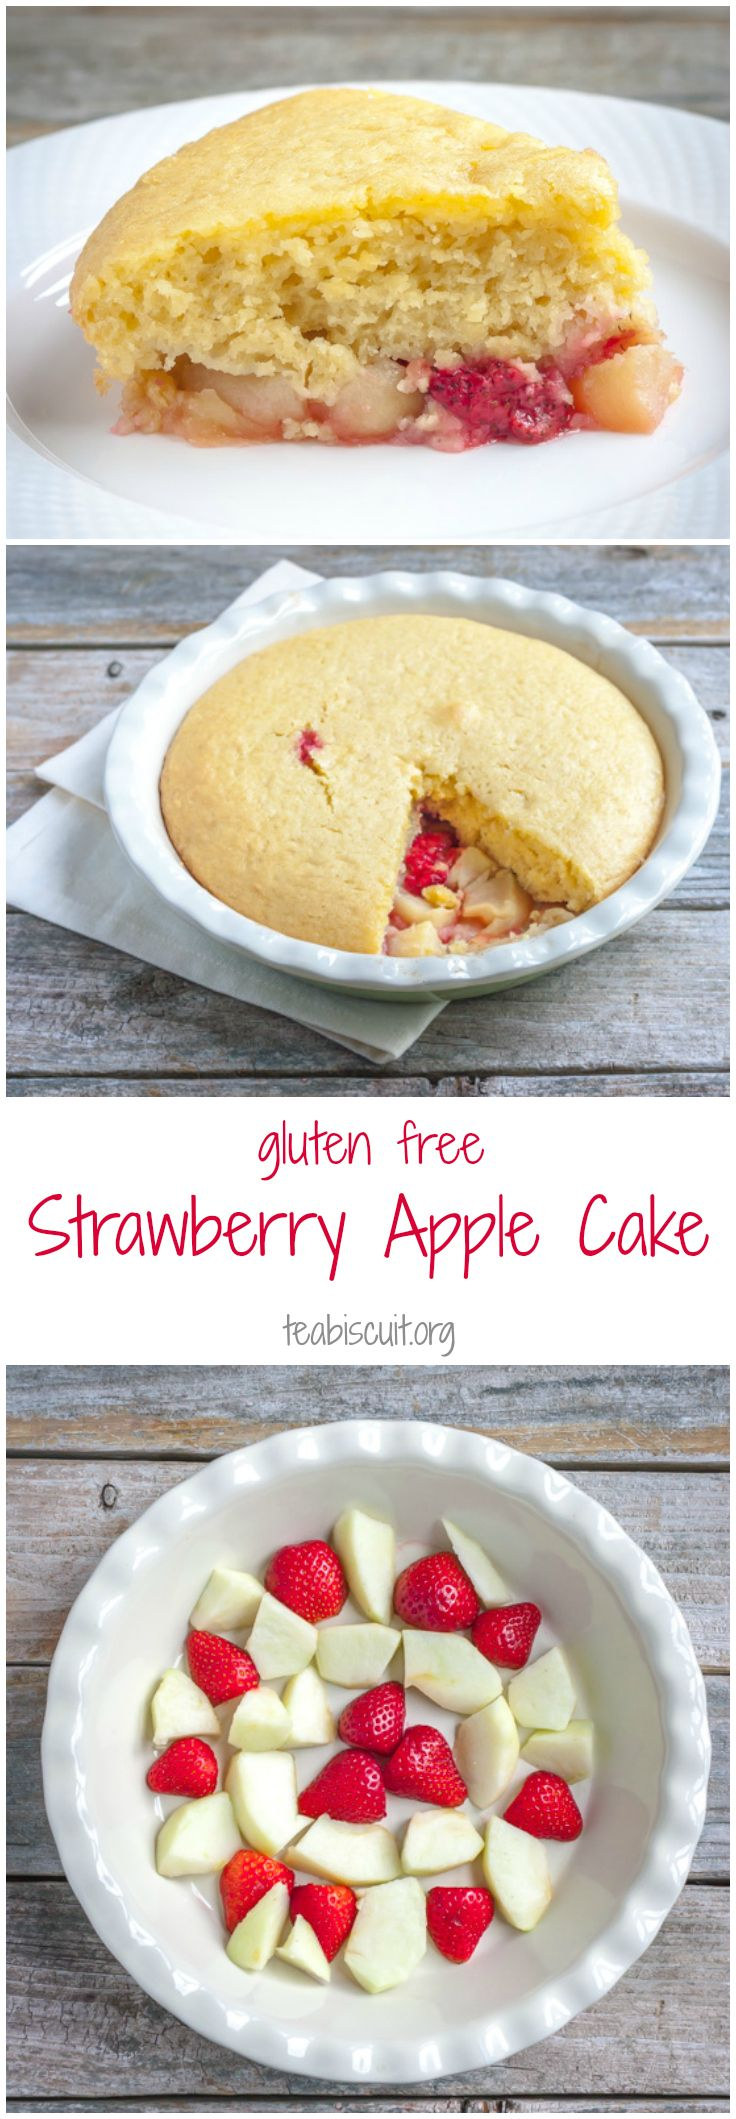 Beautifully moist Gluten Free Apple Cake with Strawberries, perfect for breakfast or afternoon tea! | teabiscuit.org